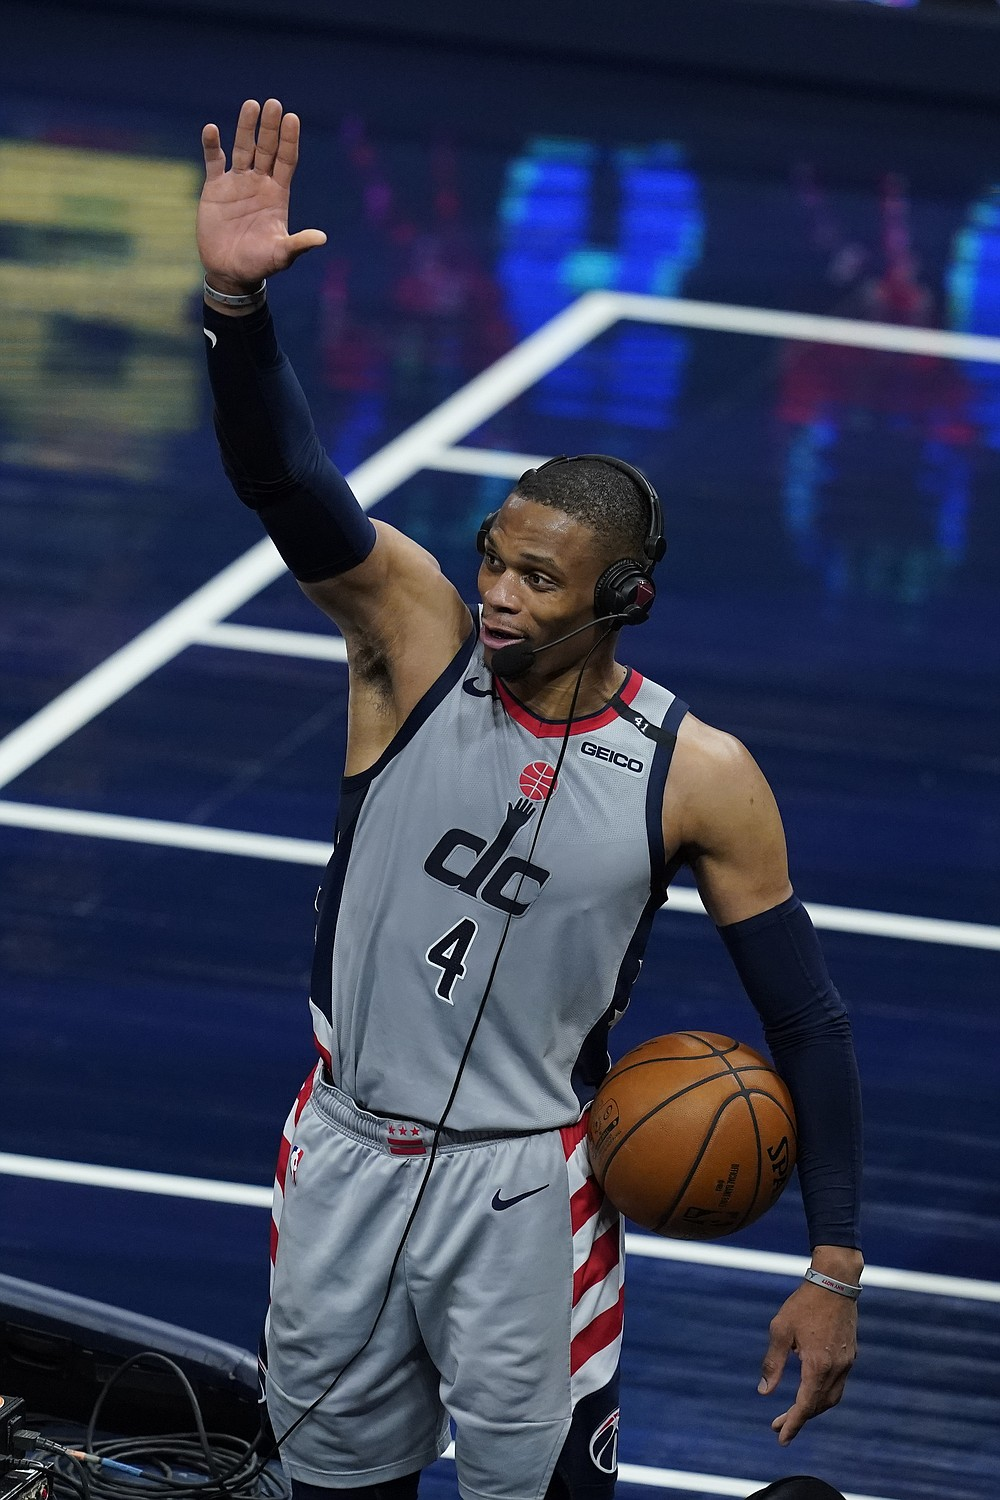 Washington Wizards' Russell Westbrook reacts as he is interviewed following an NBA basketball game against the Indiana Pacers, Saturday, May 8, 2021, in Indianapolis. Washington won 133-132 in overtime. (AP Photo/Darron Cummings)